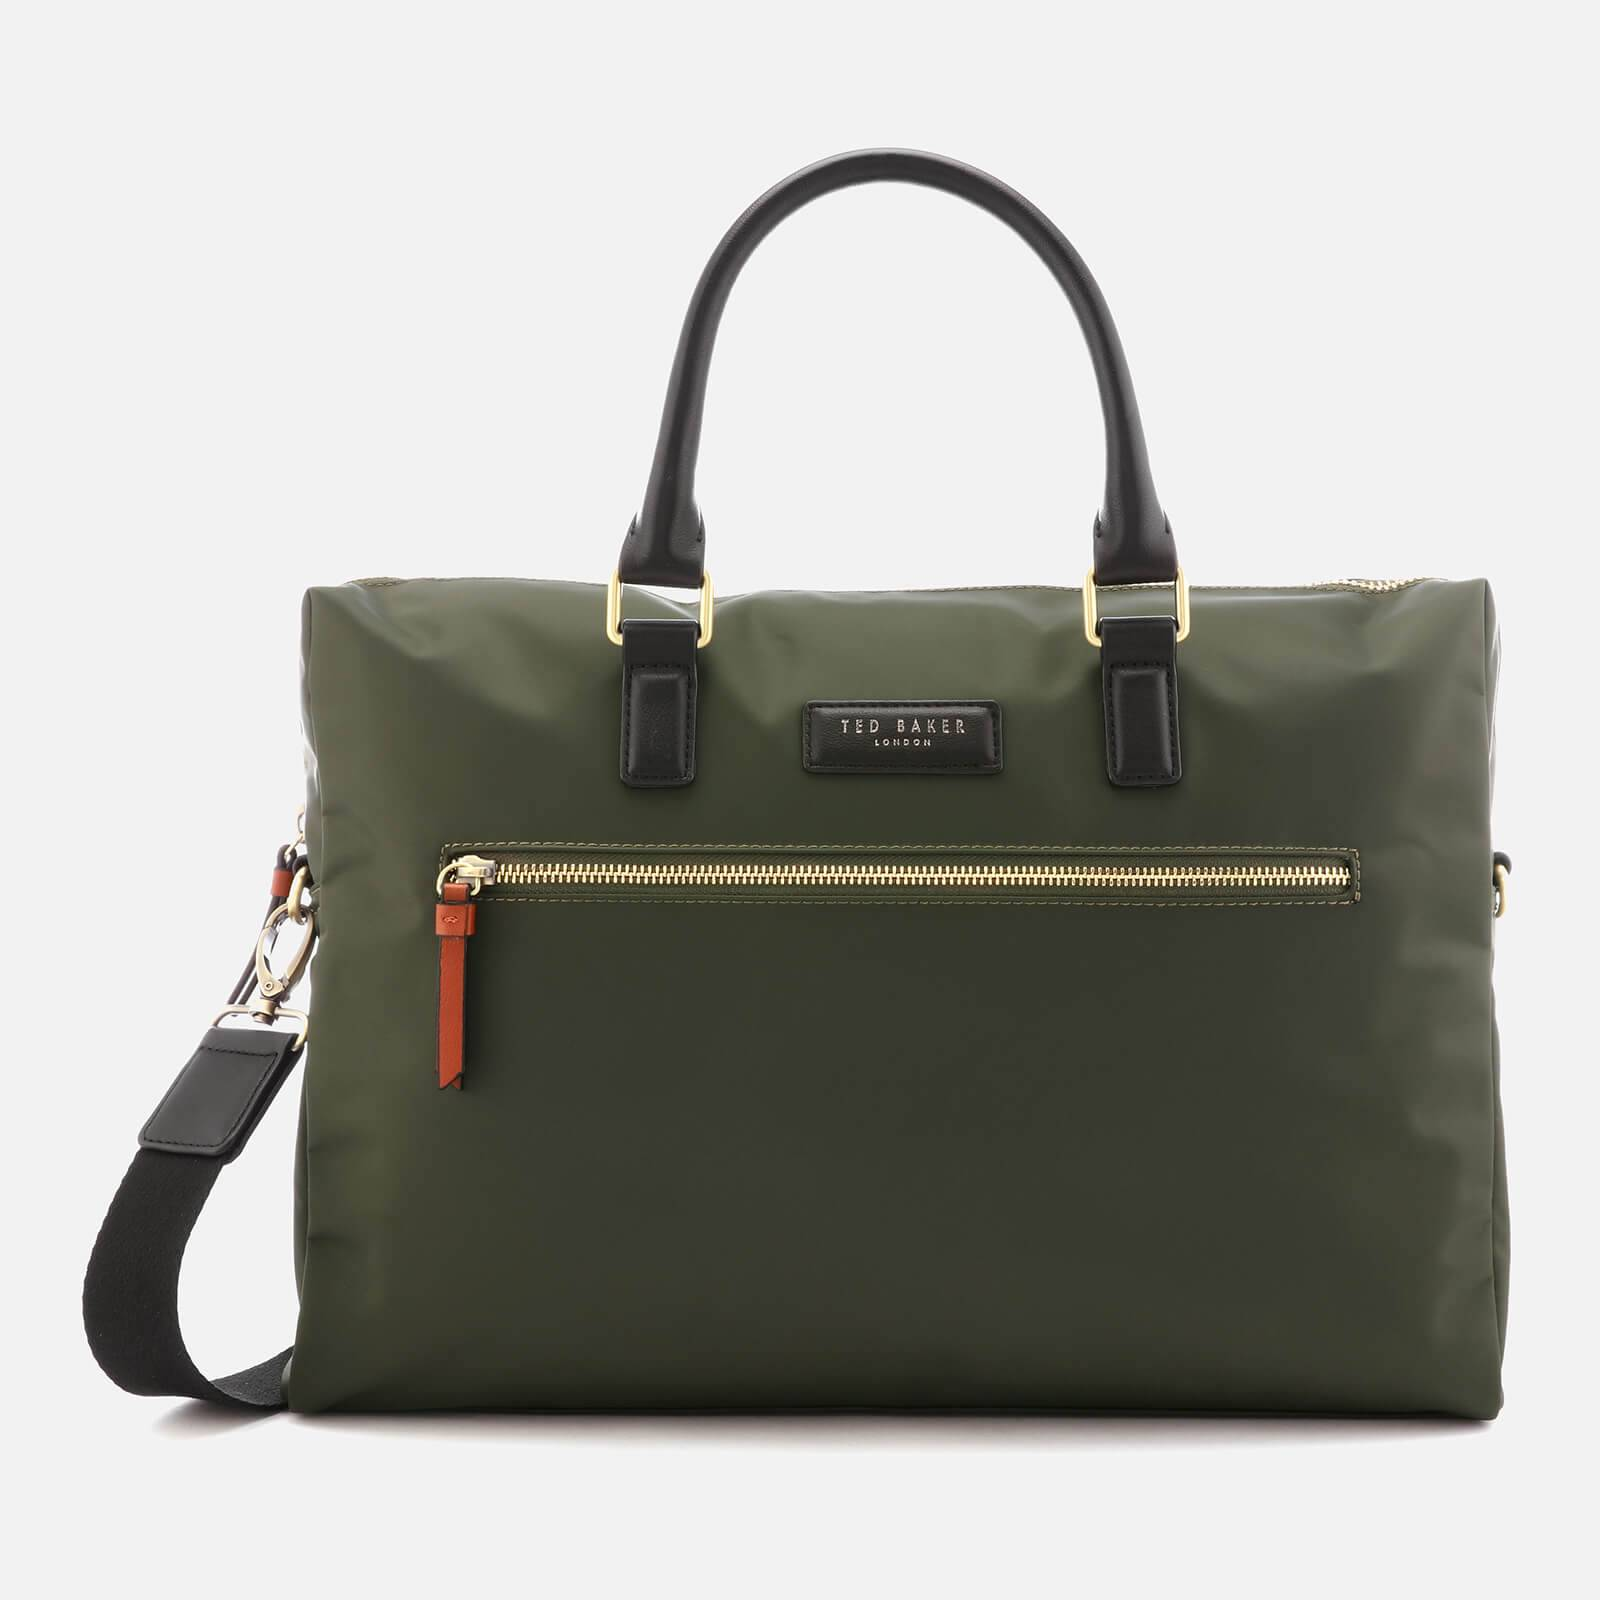 Ted Baker Men's Dancer Satin Nylon Document Bag - Olive